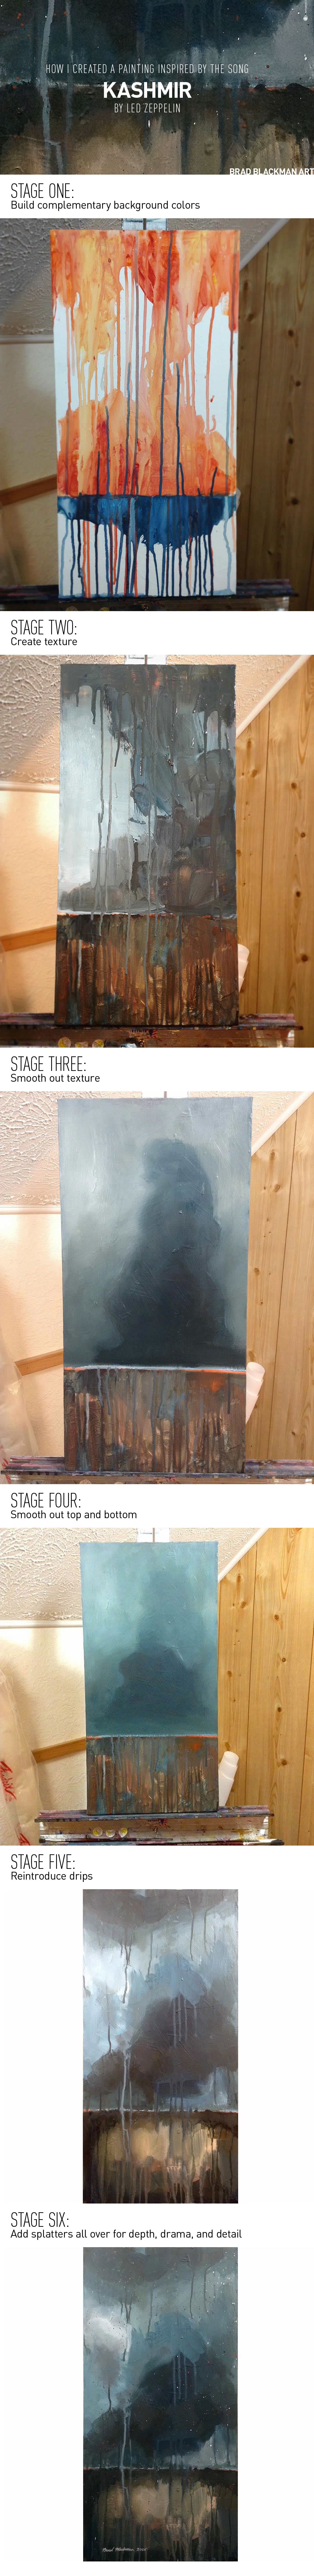 """Brad Blackman's 6 steps to a painting inspired by """"Kashmir"""""""